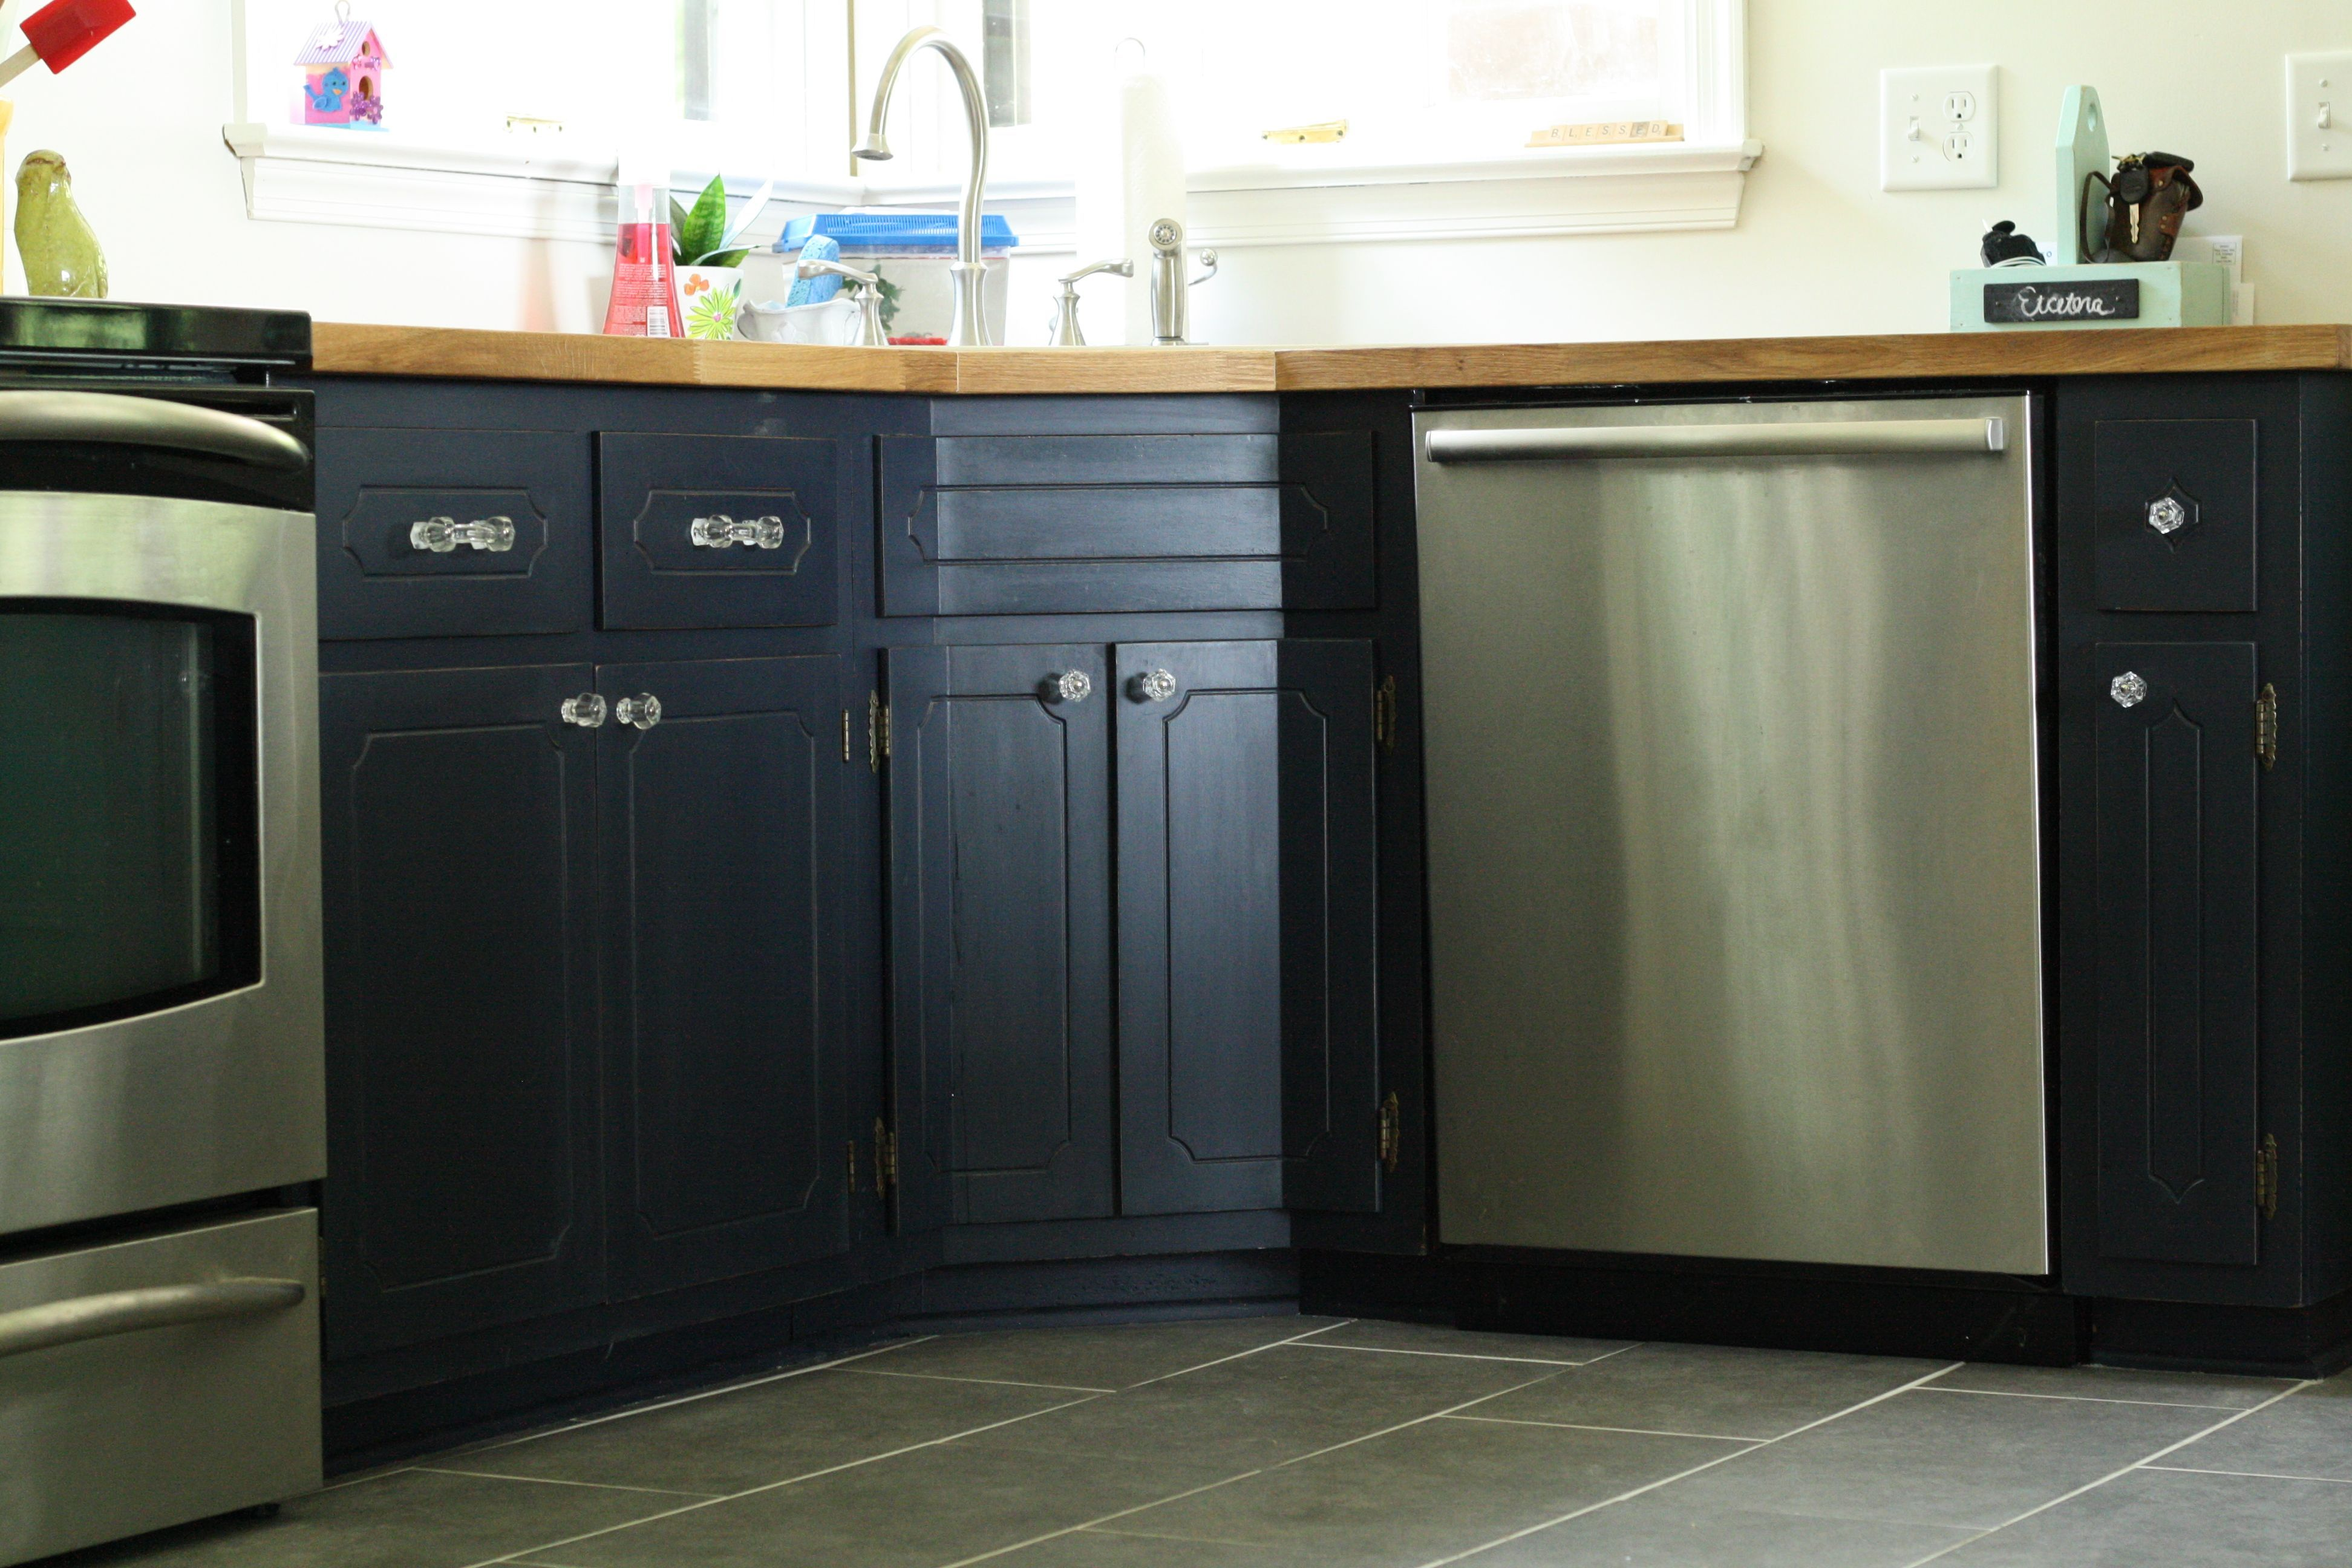 Best Kitchen Gallery: Cassie's Painted Kitchen Cabi S With General Finishes Milk Paint of General Finishes Milk Paint Kitchen Cabinets on rachelxblog.com